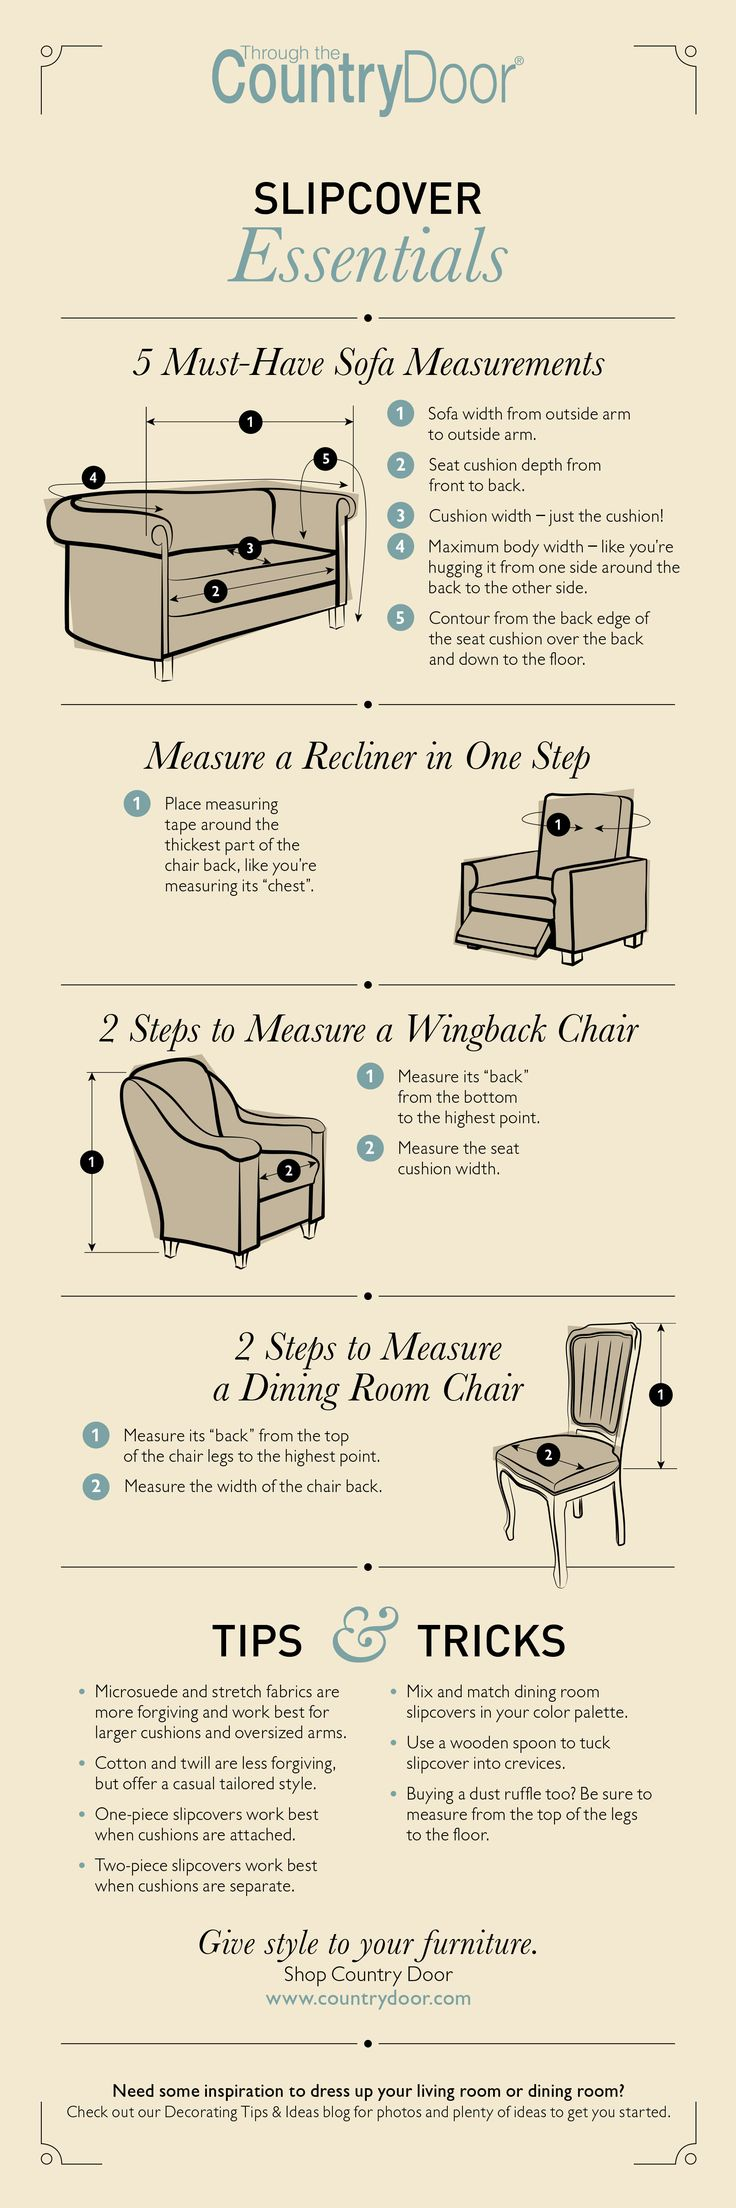 Slipcover Buying Guide: With a few simple measurements, slipcovers give your old furniture a new look without the expense of having to buy new furniture. Find out how to measure your furniture for the perfect fit.                                                                                                                                                                                 More